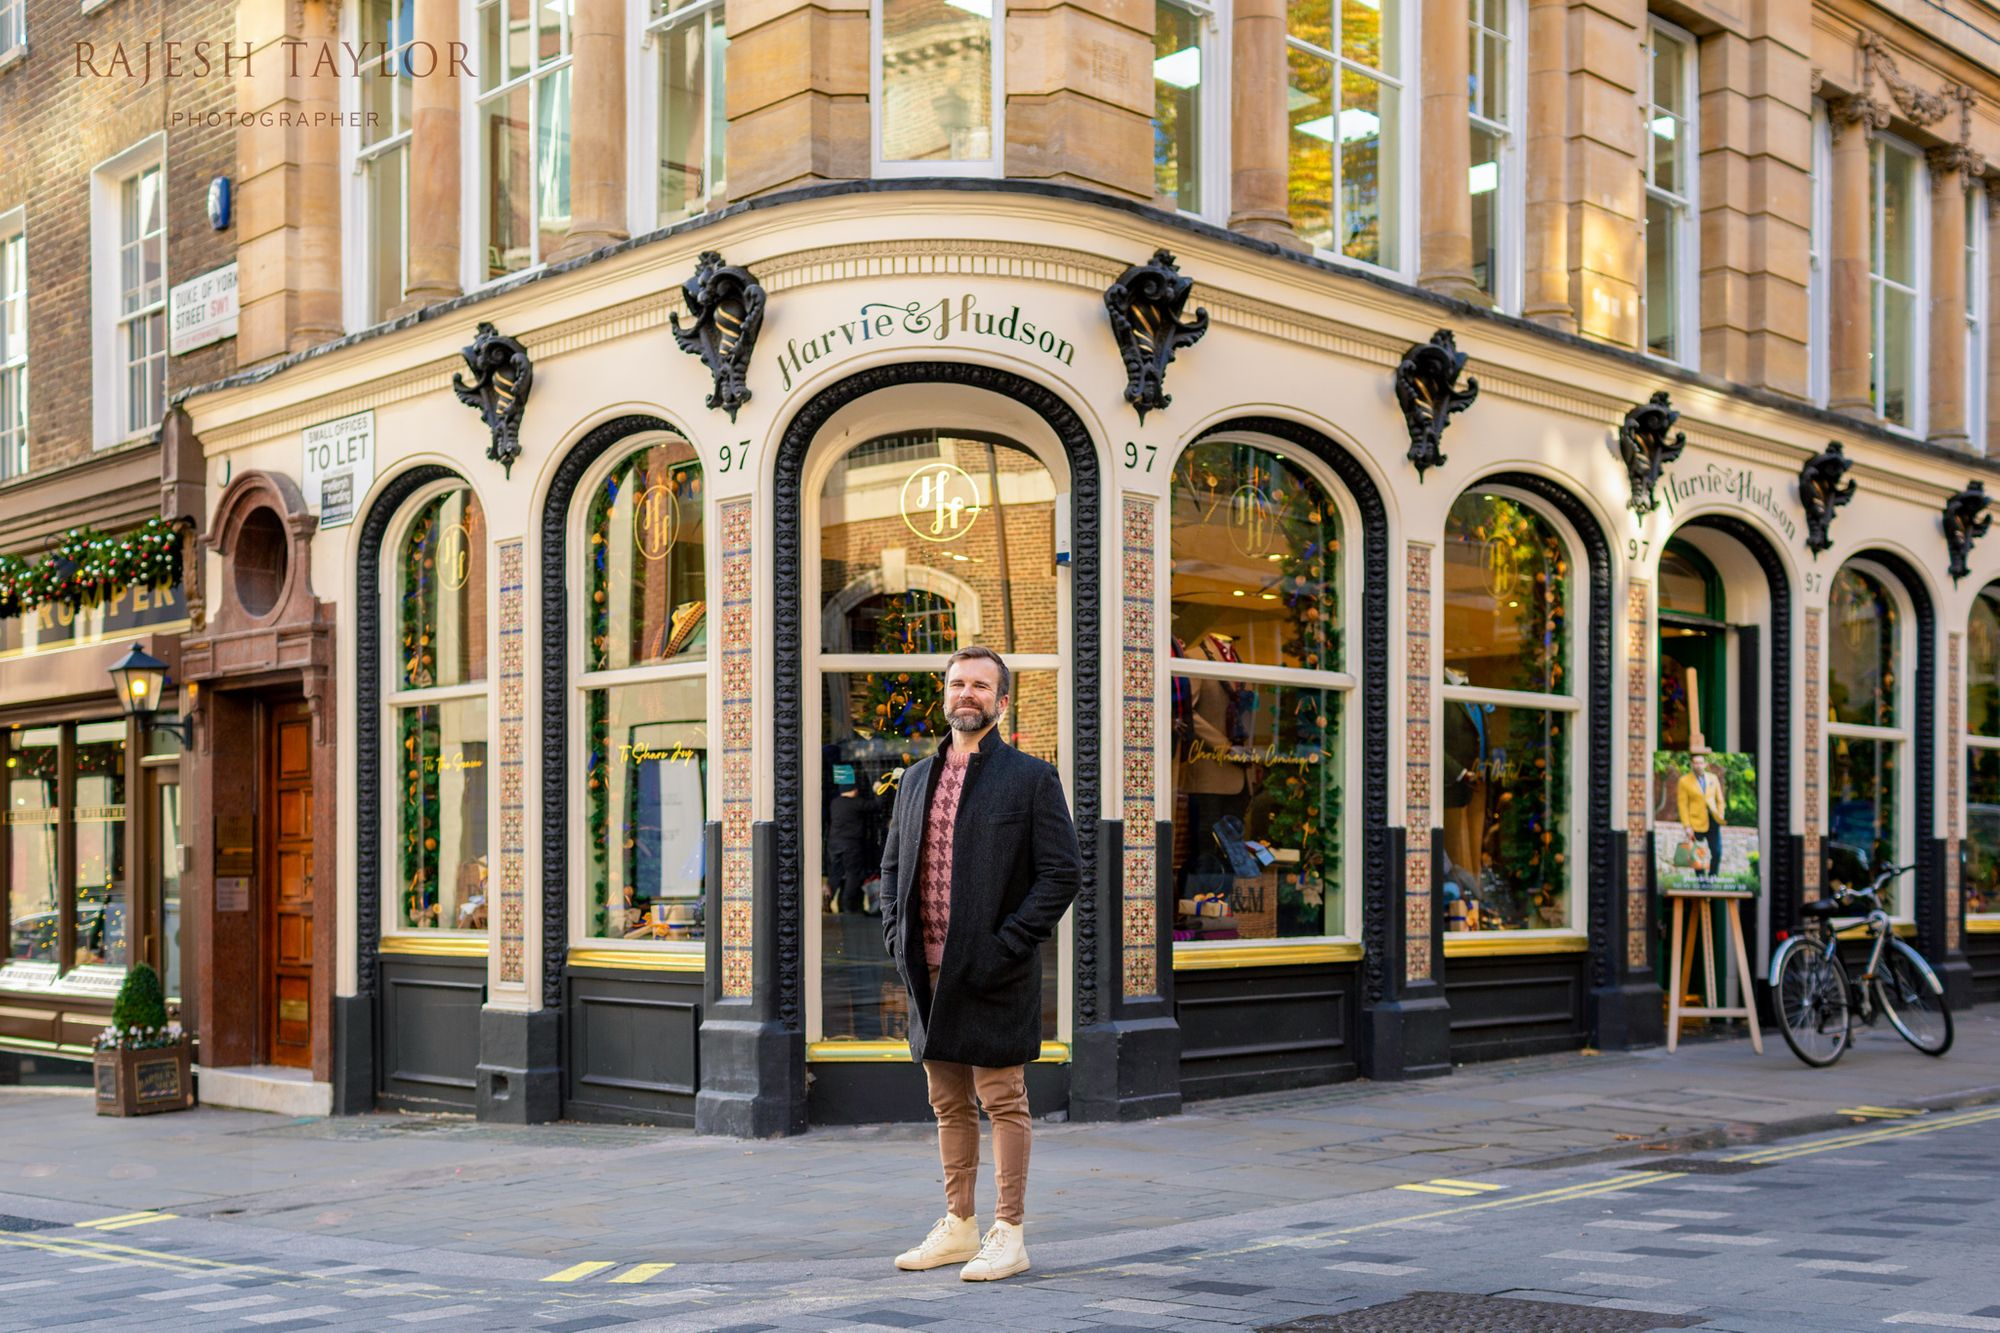 Brian Snelling & Family Thanksgiving Shoot and Shopping Experience, Harvey & Hudson, Jermyn Street. © Rajesh Taylor